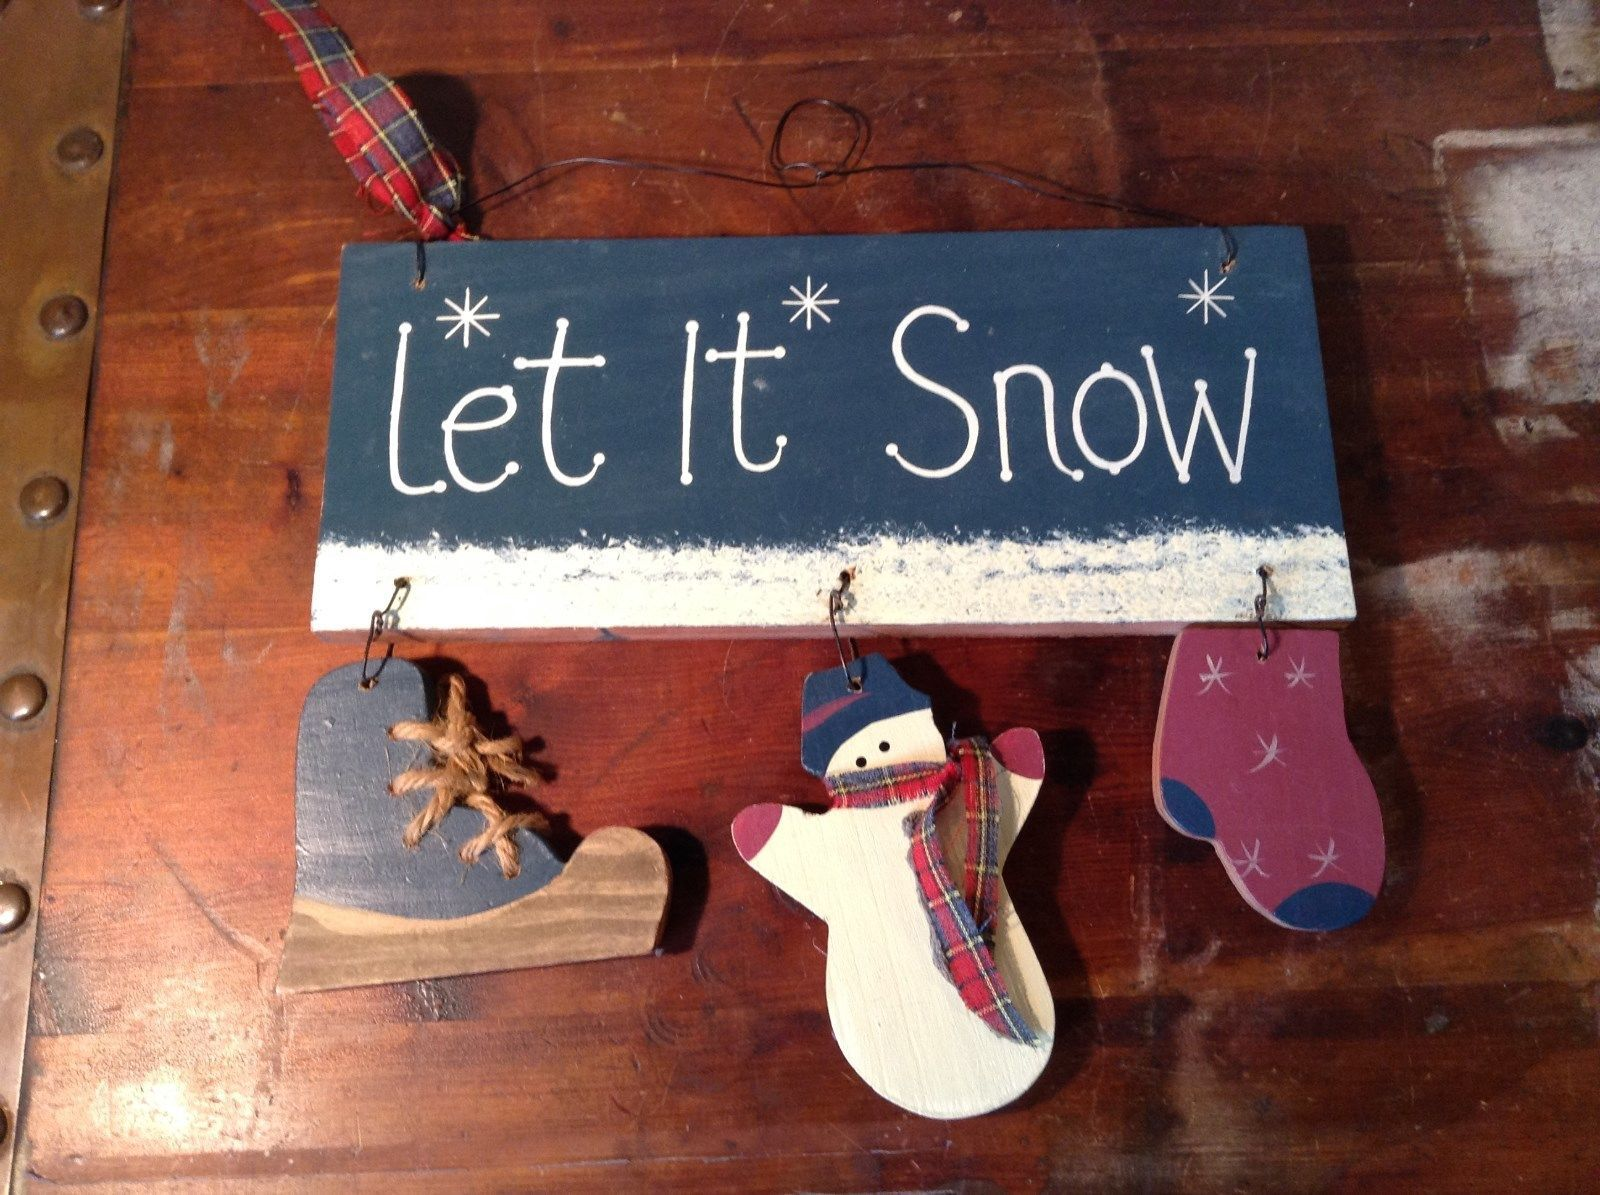 Let It Snow Wooden Wall Hanging Decoration Wooden Skate Snowman and Glove